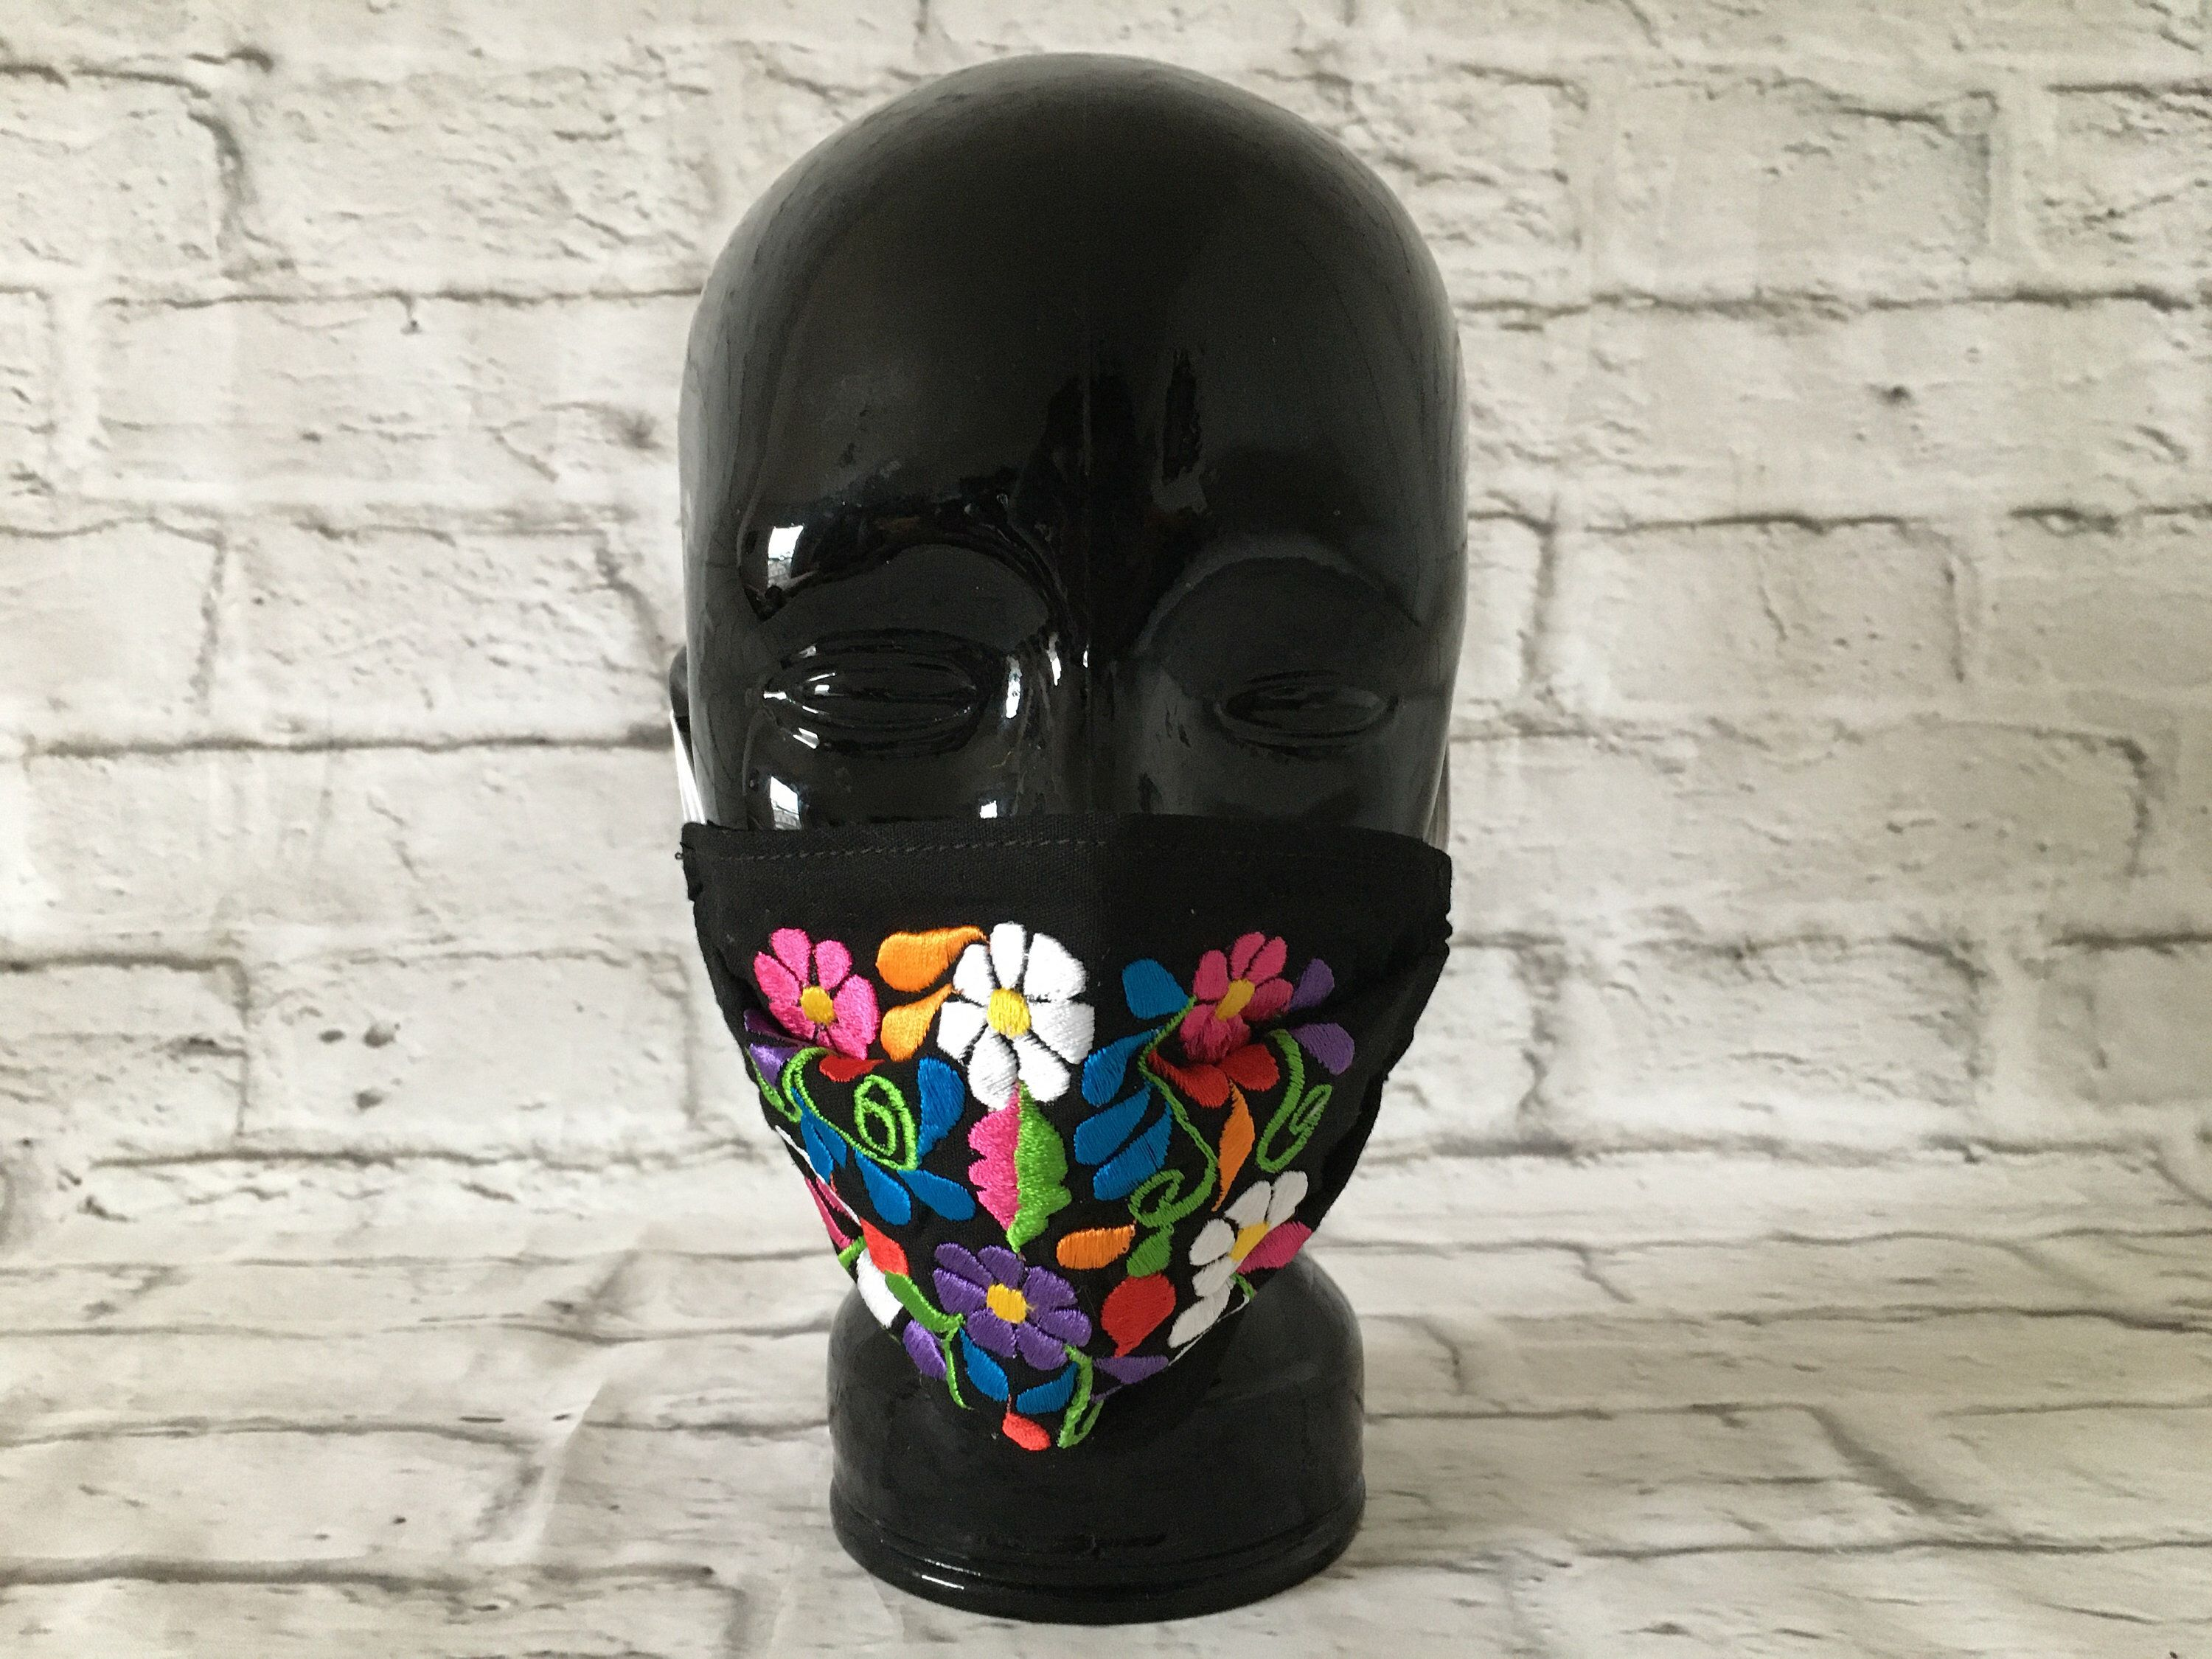 Mexican Embroidered Fabric Face Masks 😷 Handmade in Chiapas, Mexico 🇲🇽  #handmadefacemask #handmademask #mexicanmask #embroideredmask #topabocas #cubrebocas #cubrebocasdetela #artesaniasmexicanas #fabricmask #hechoamano #hechoenmexico #handmade #madeinmexico #mexicanfacemask #fabricfacemask #topabocasdetela #floralmask #etsy